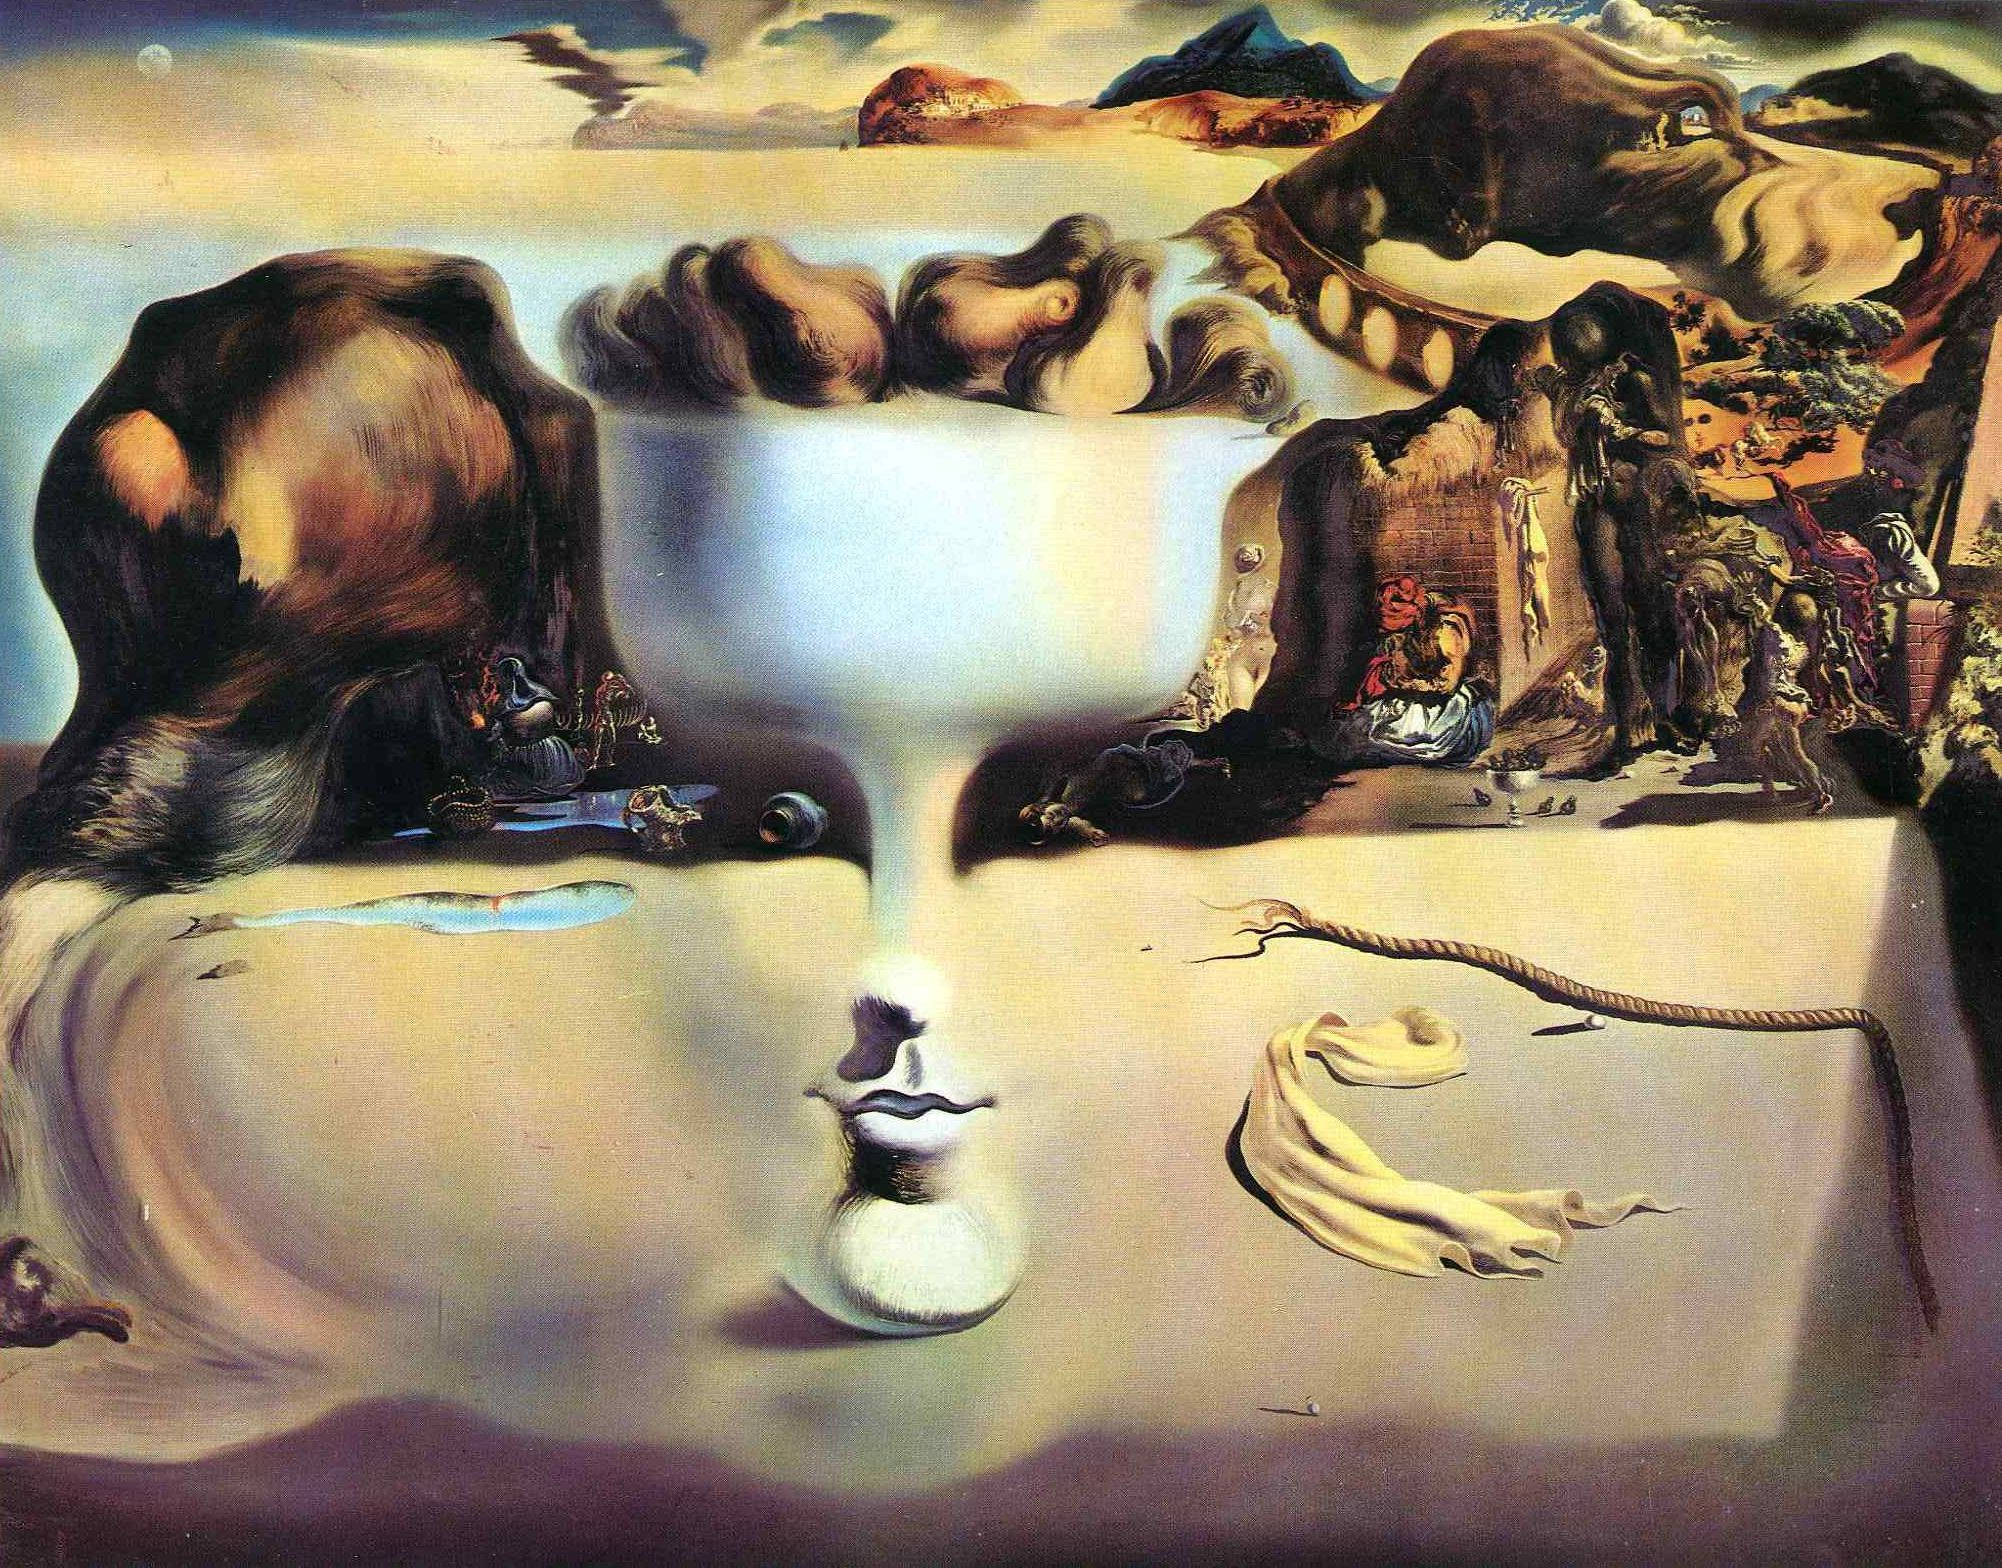 Salvador dali most famous paintings salvador dali painter surrealism picture phenomenon of the face and